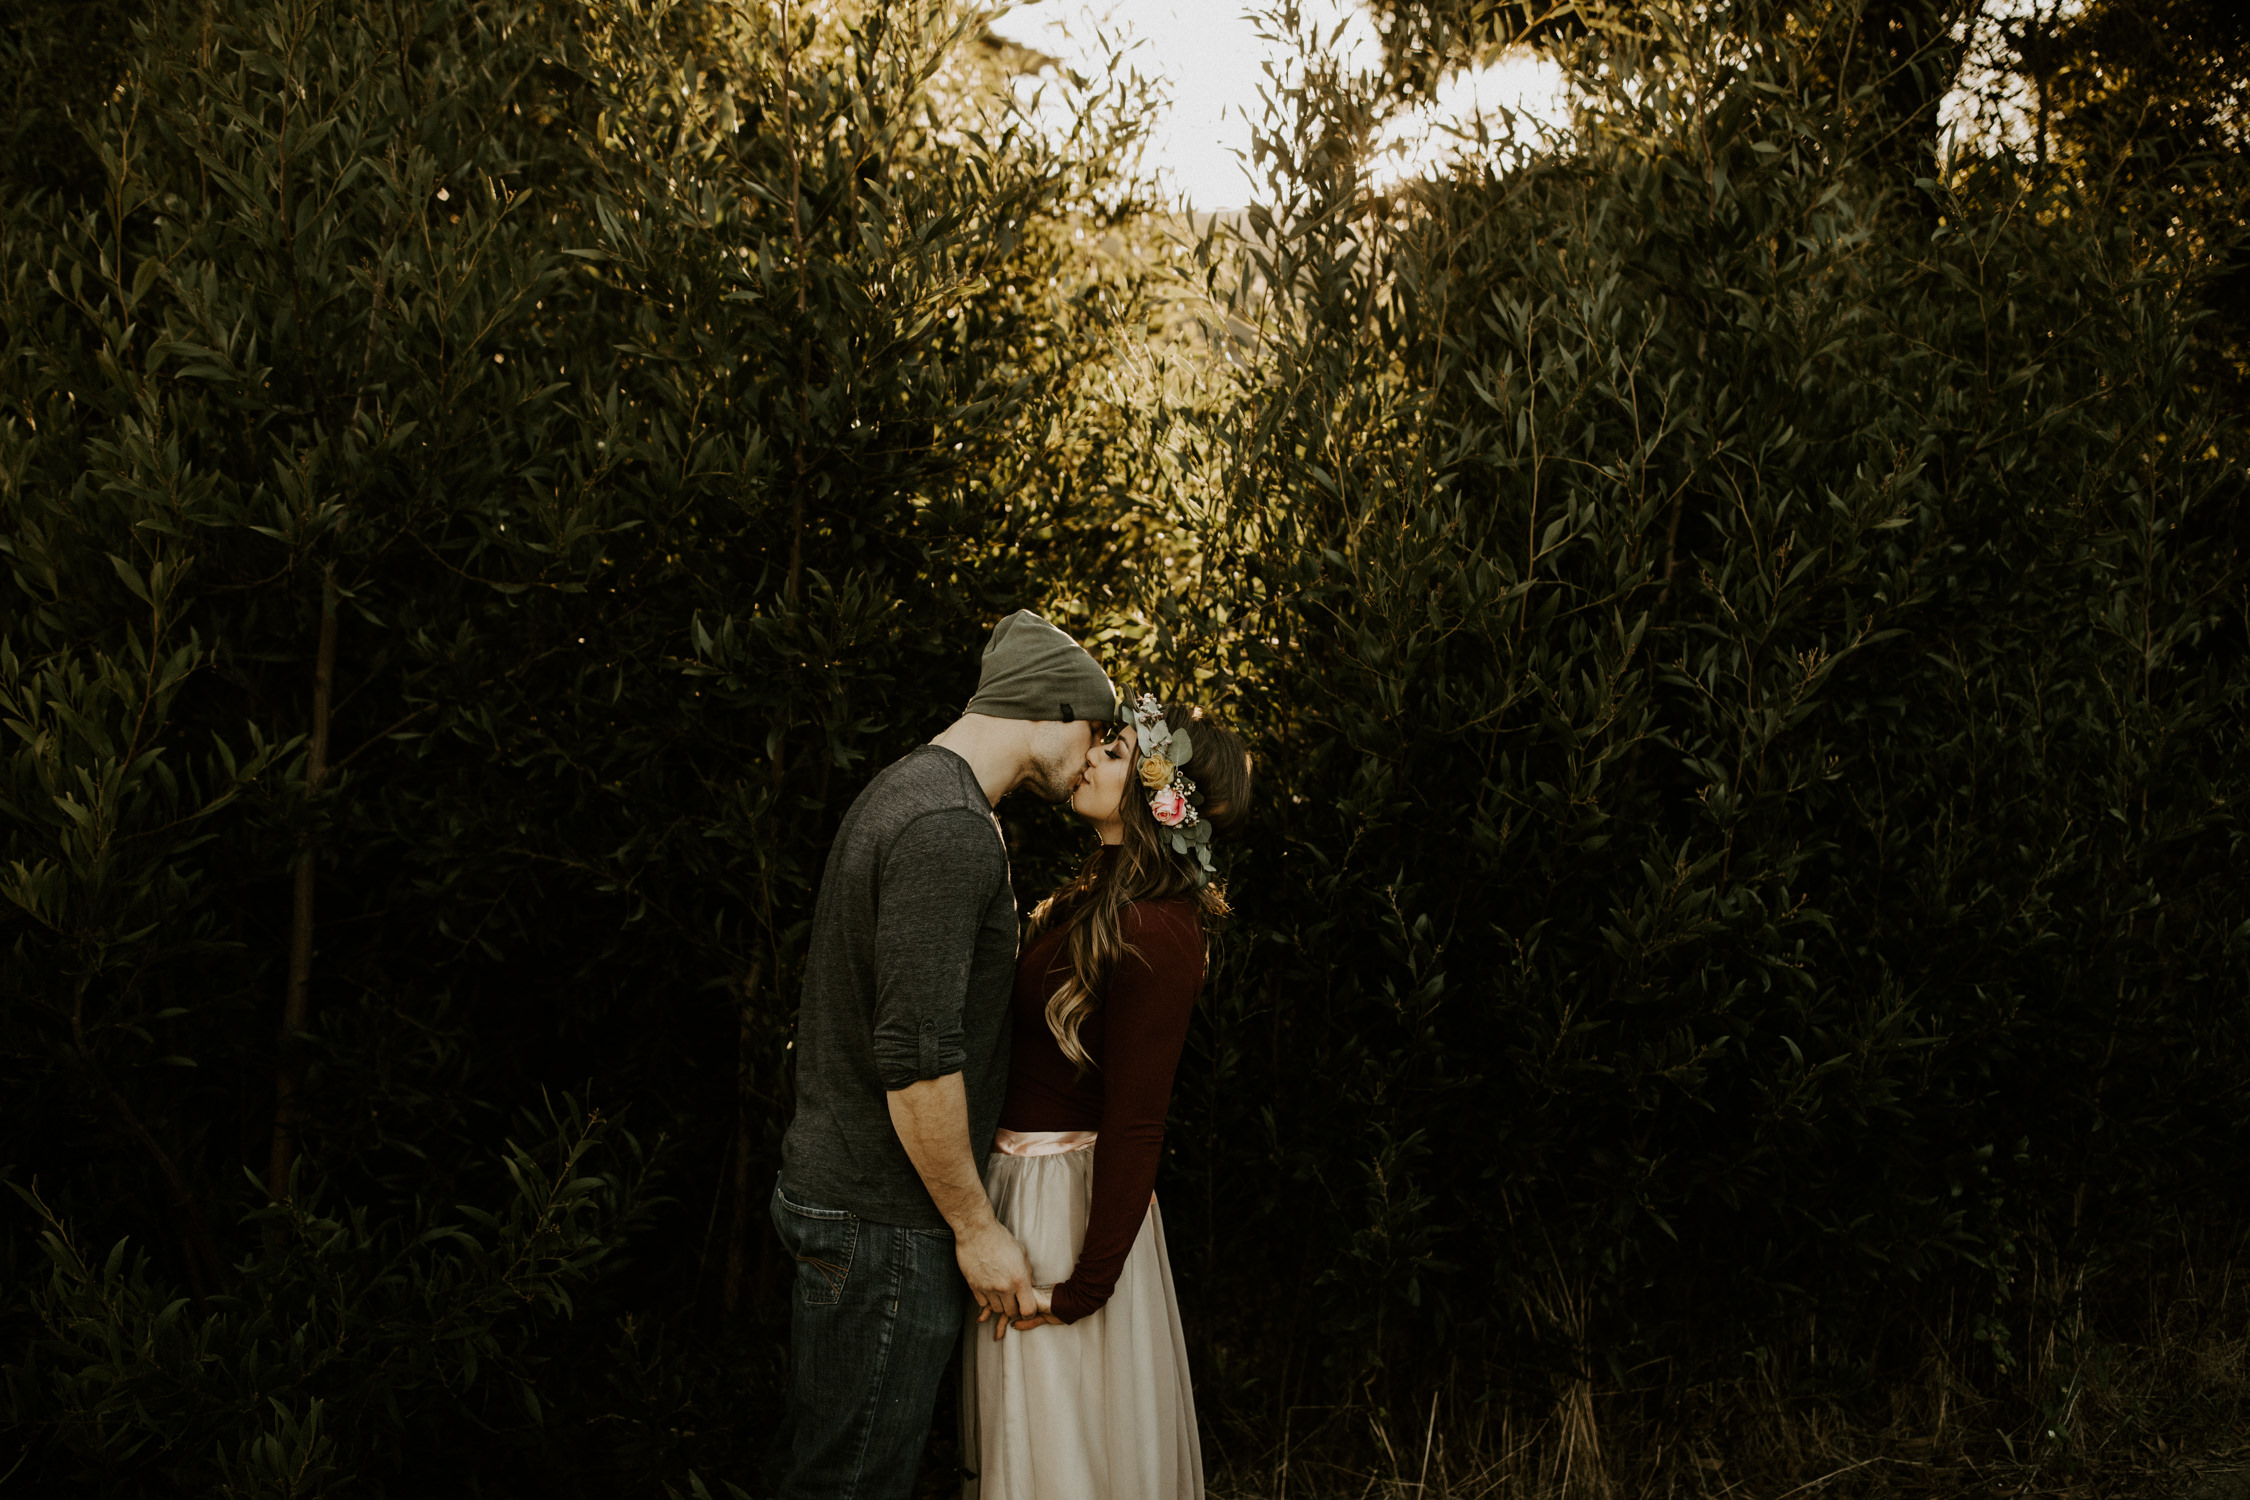 couple-intimate-engagement-session-sausalito-california-7.jpg